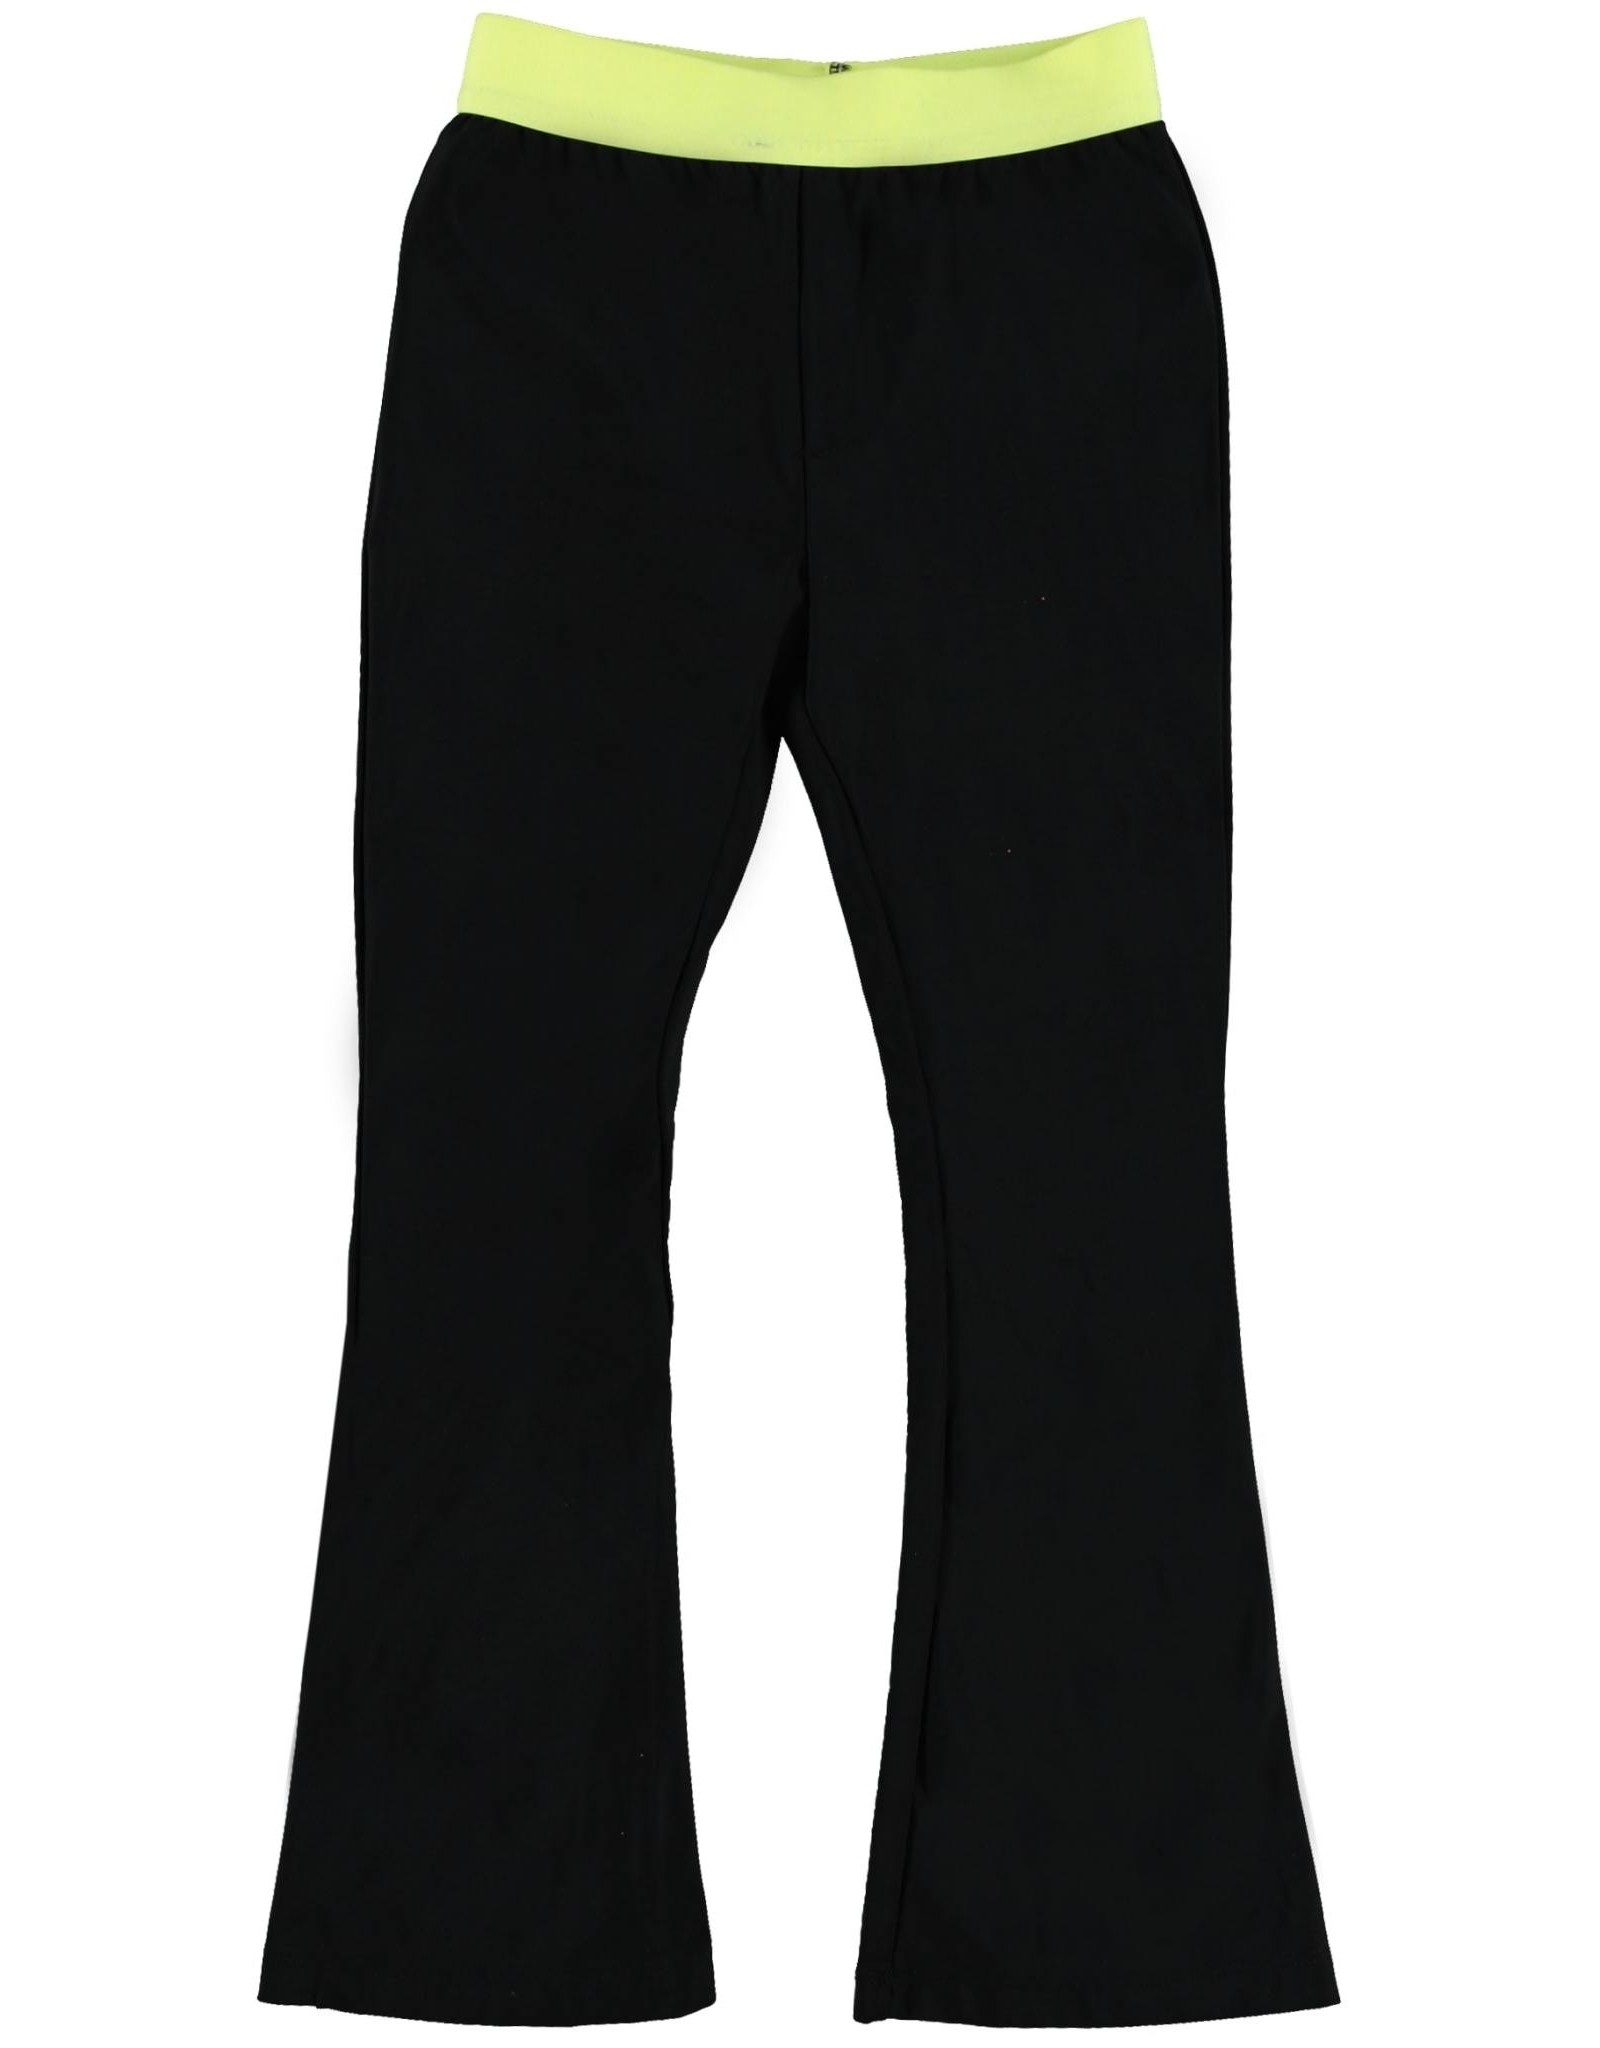 O'Chill O'Chill meiden flaired pants Paige Black